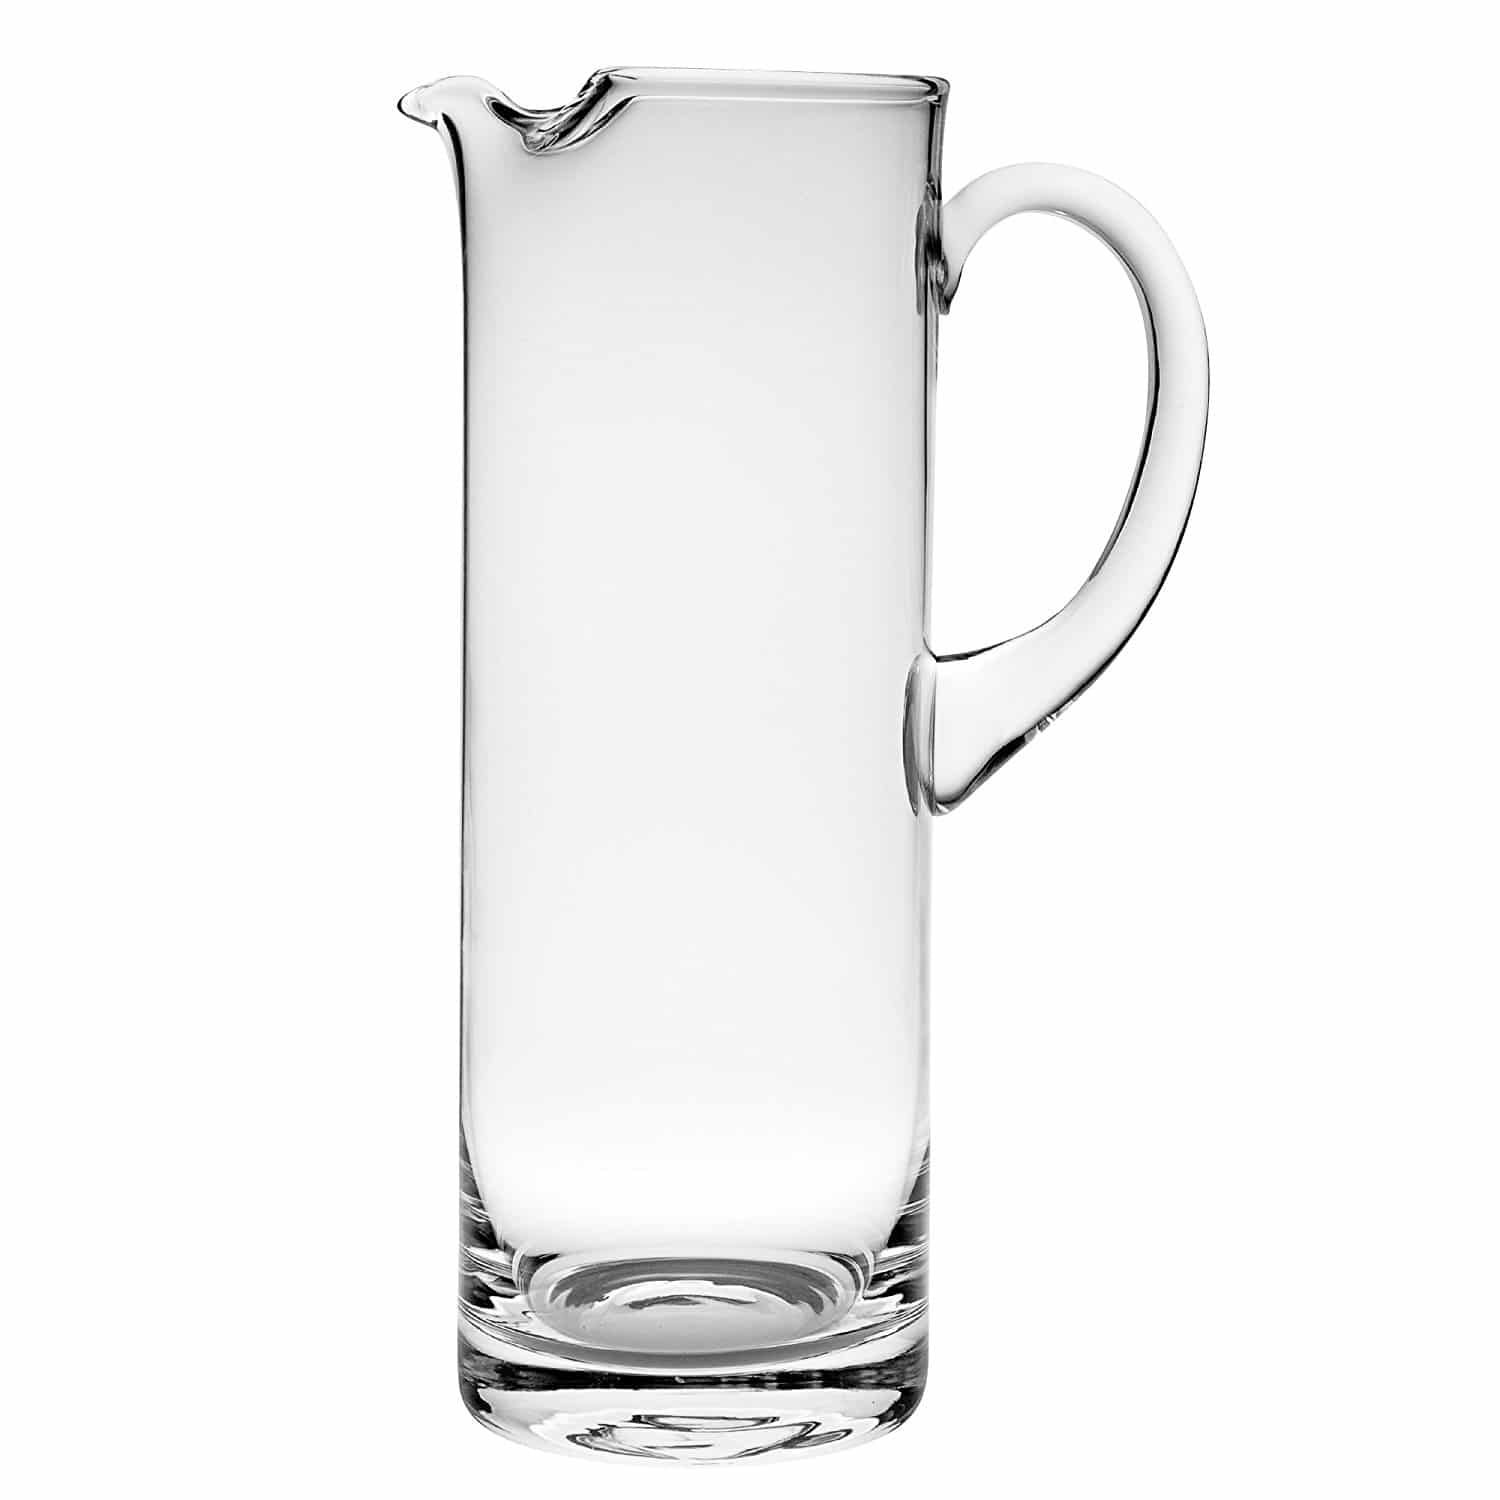 Top 10 Best Glass Water Pitchers In 2020 Topreviewproducts